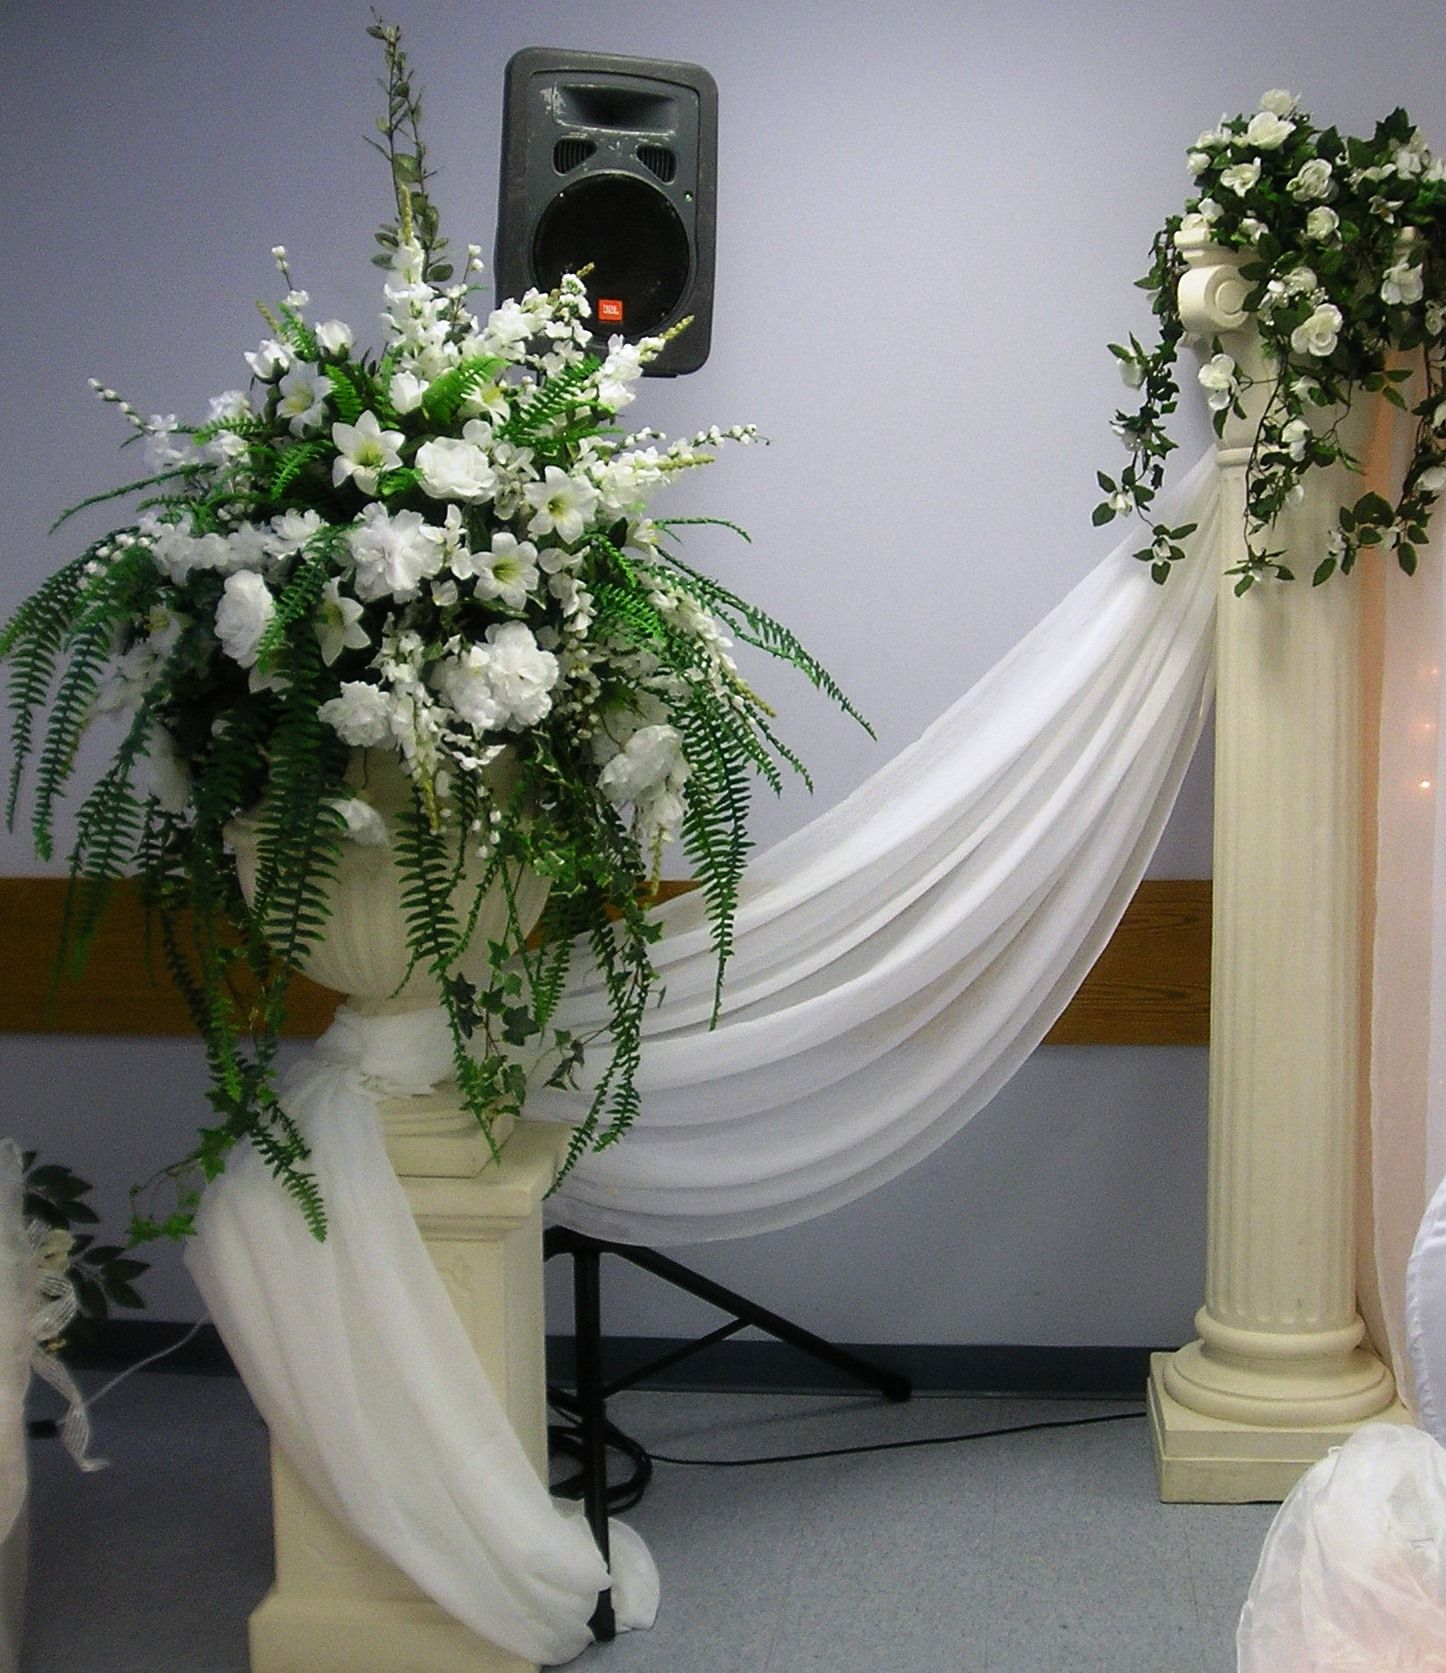 Wedding Flower Pillars: White Floral Arrangement In